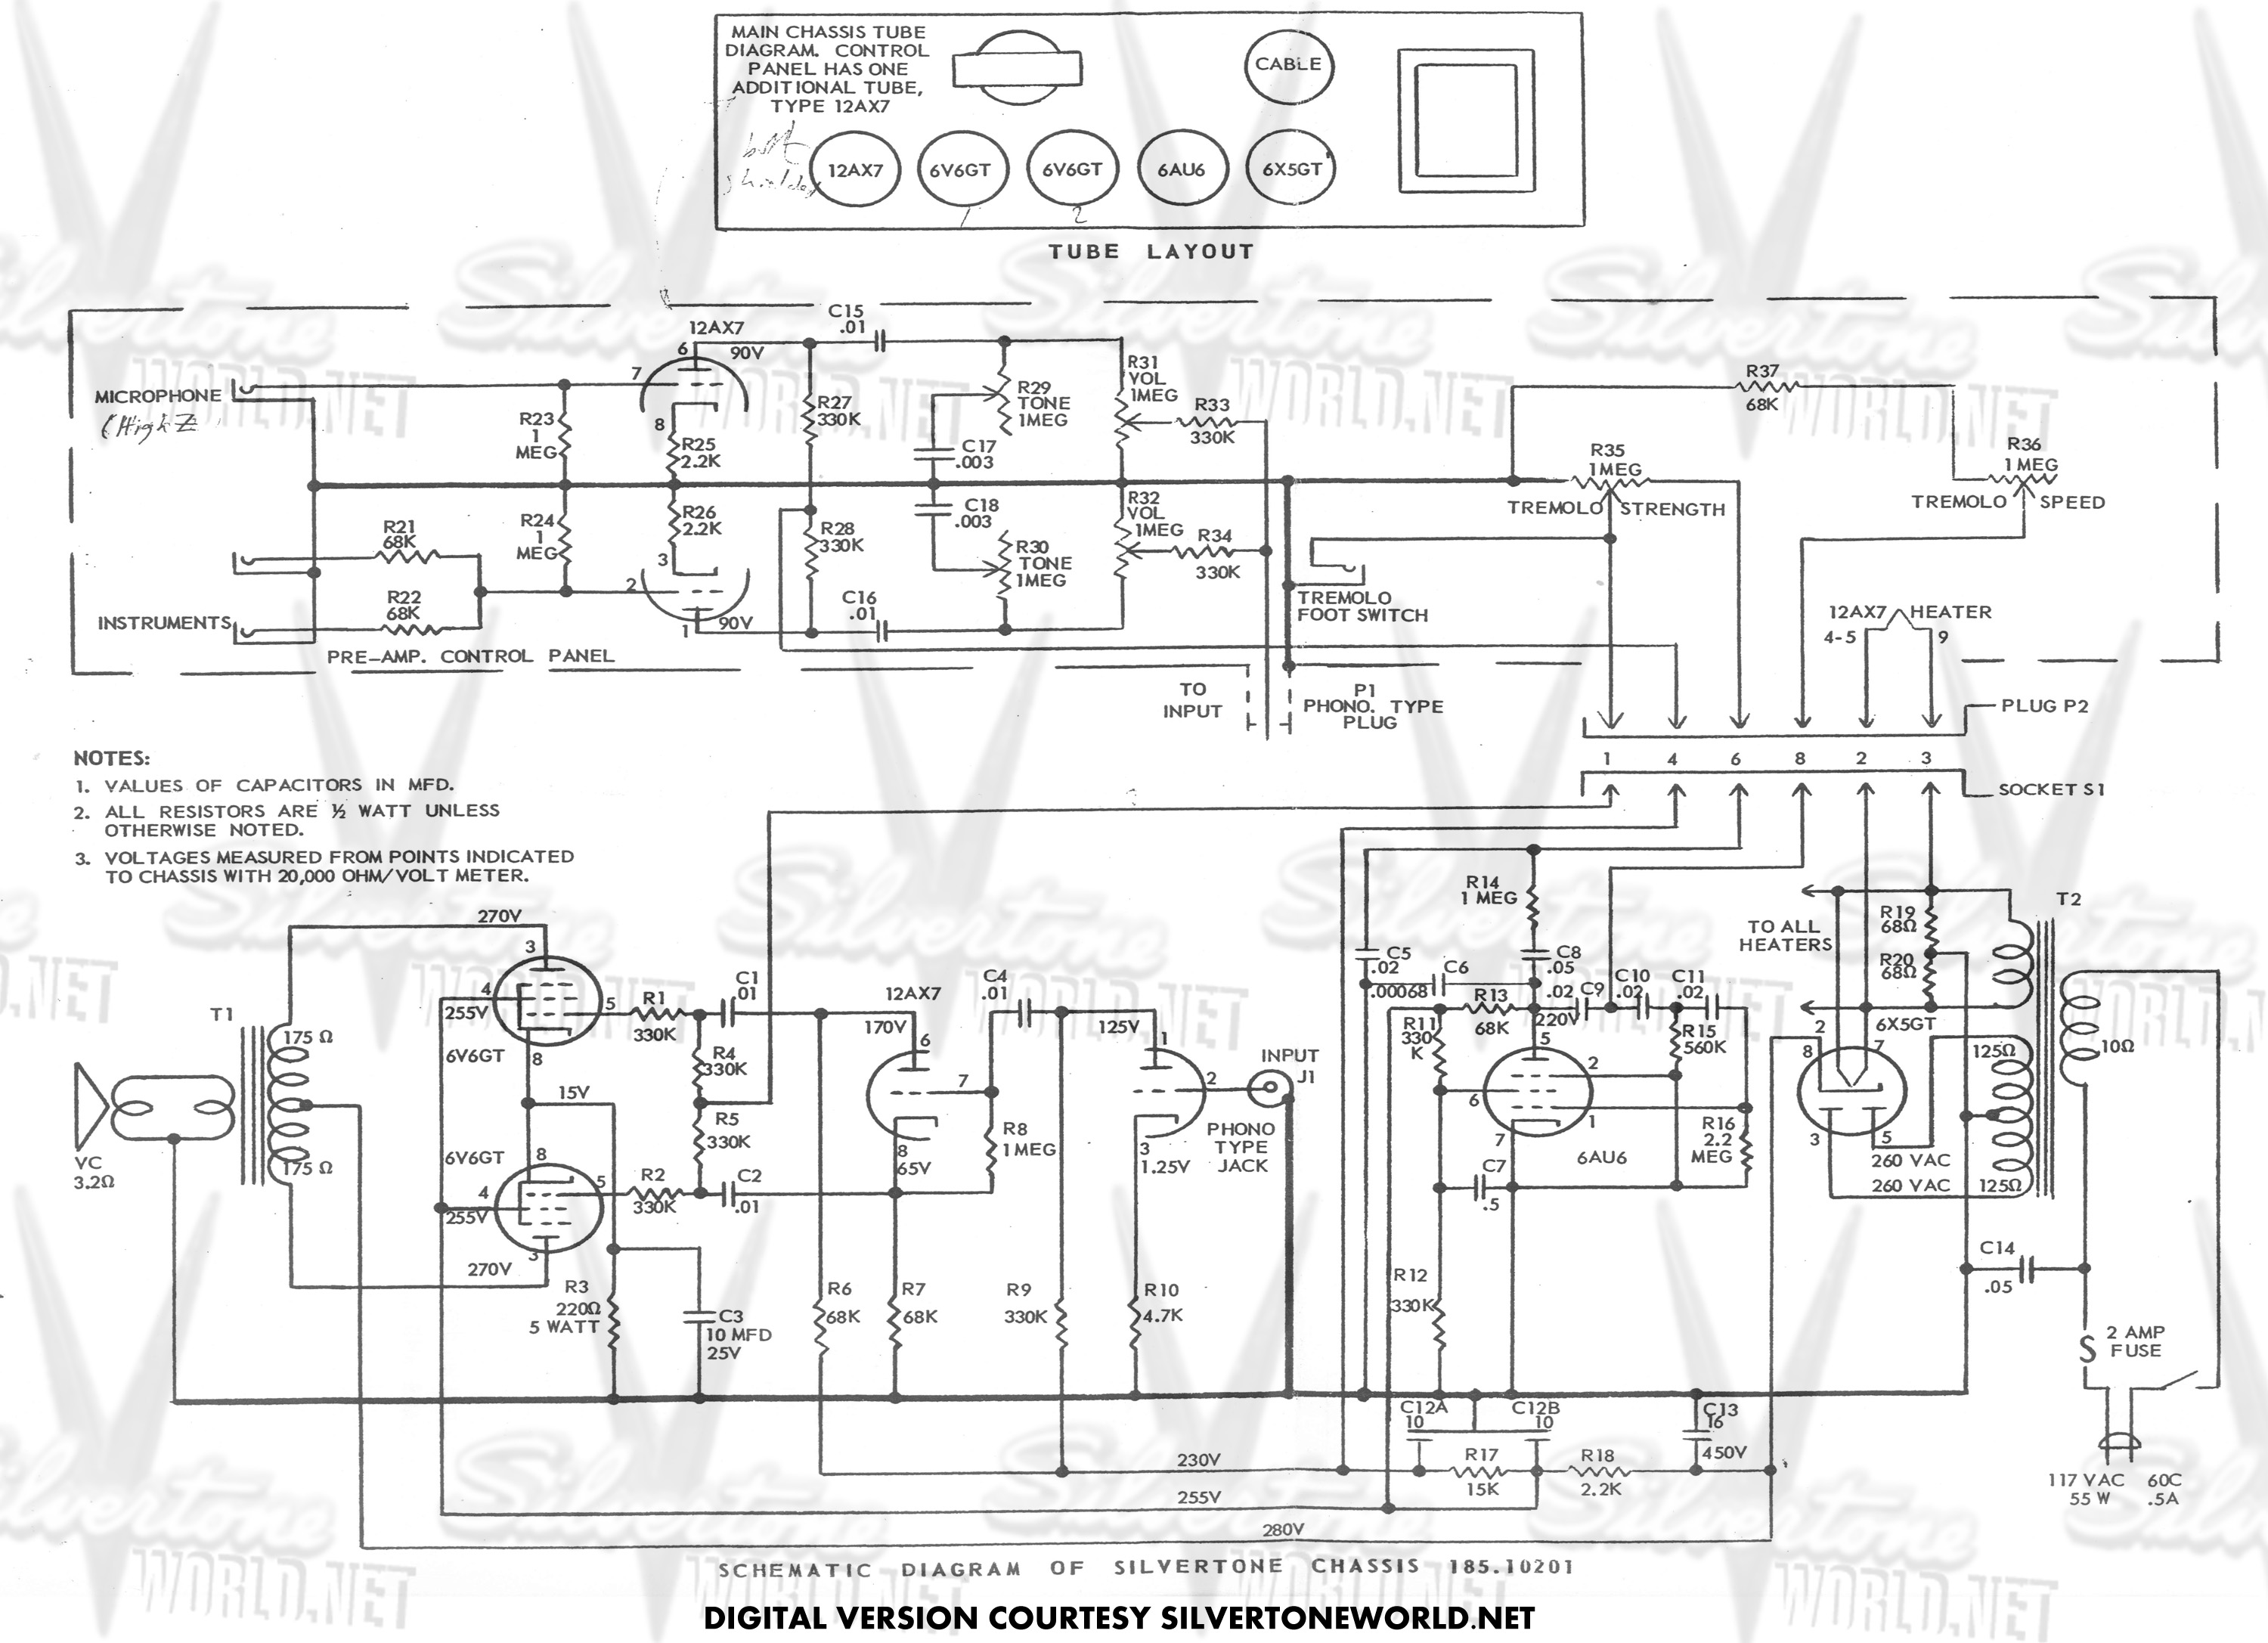 silvertone world - division 57 - schematics, manuals and ... silver tone guitar wiring diagrams dimarzio bass guitar wiring diagrams #9